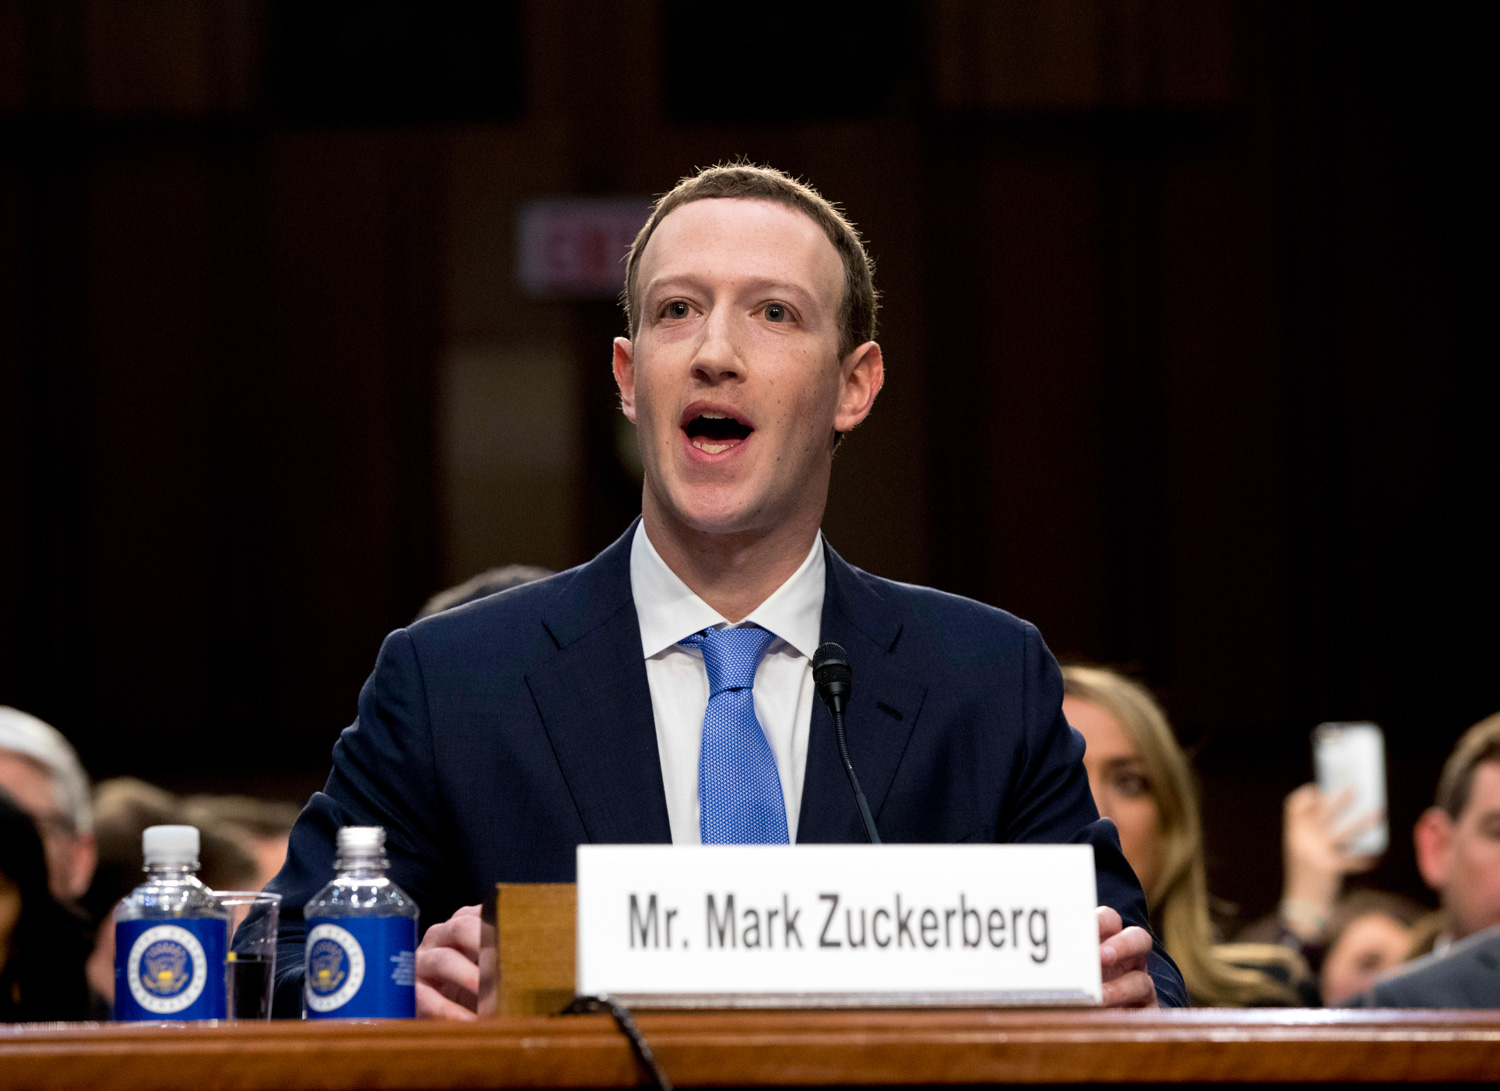 <div class='meta'><div class='origin-logo' data-origin='none'></div><span class='caption-text' data-credit='Andrew Harnik/AP Photo'>Facebook CEO Mark Zuckerberg testifies before a joint hearing of the Commerce and Judiciary Committees on Capitol Hill in Washington.</span></div>